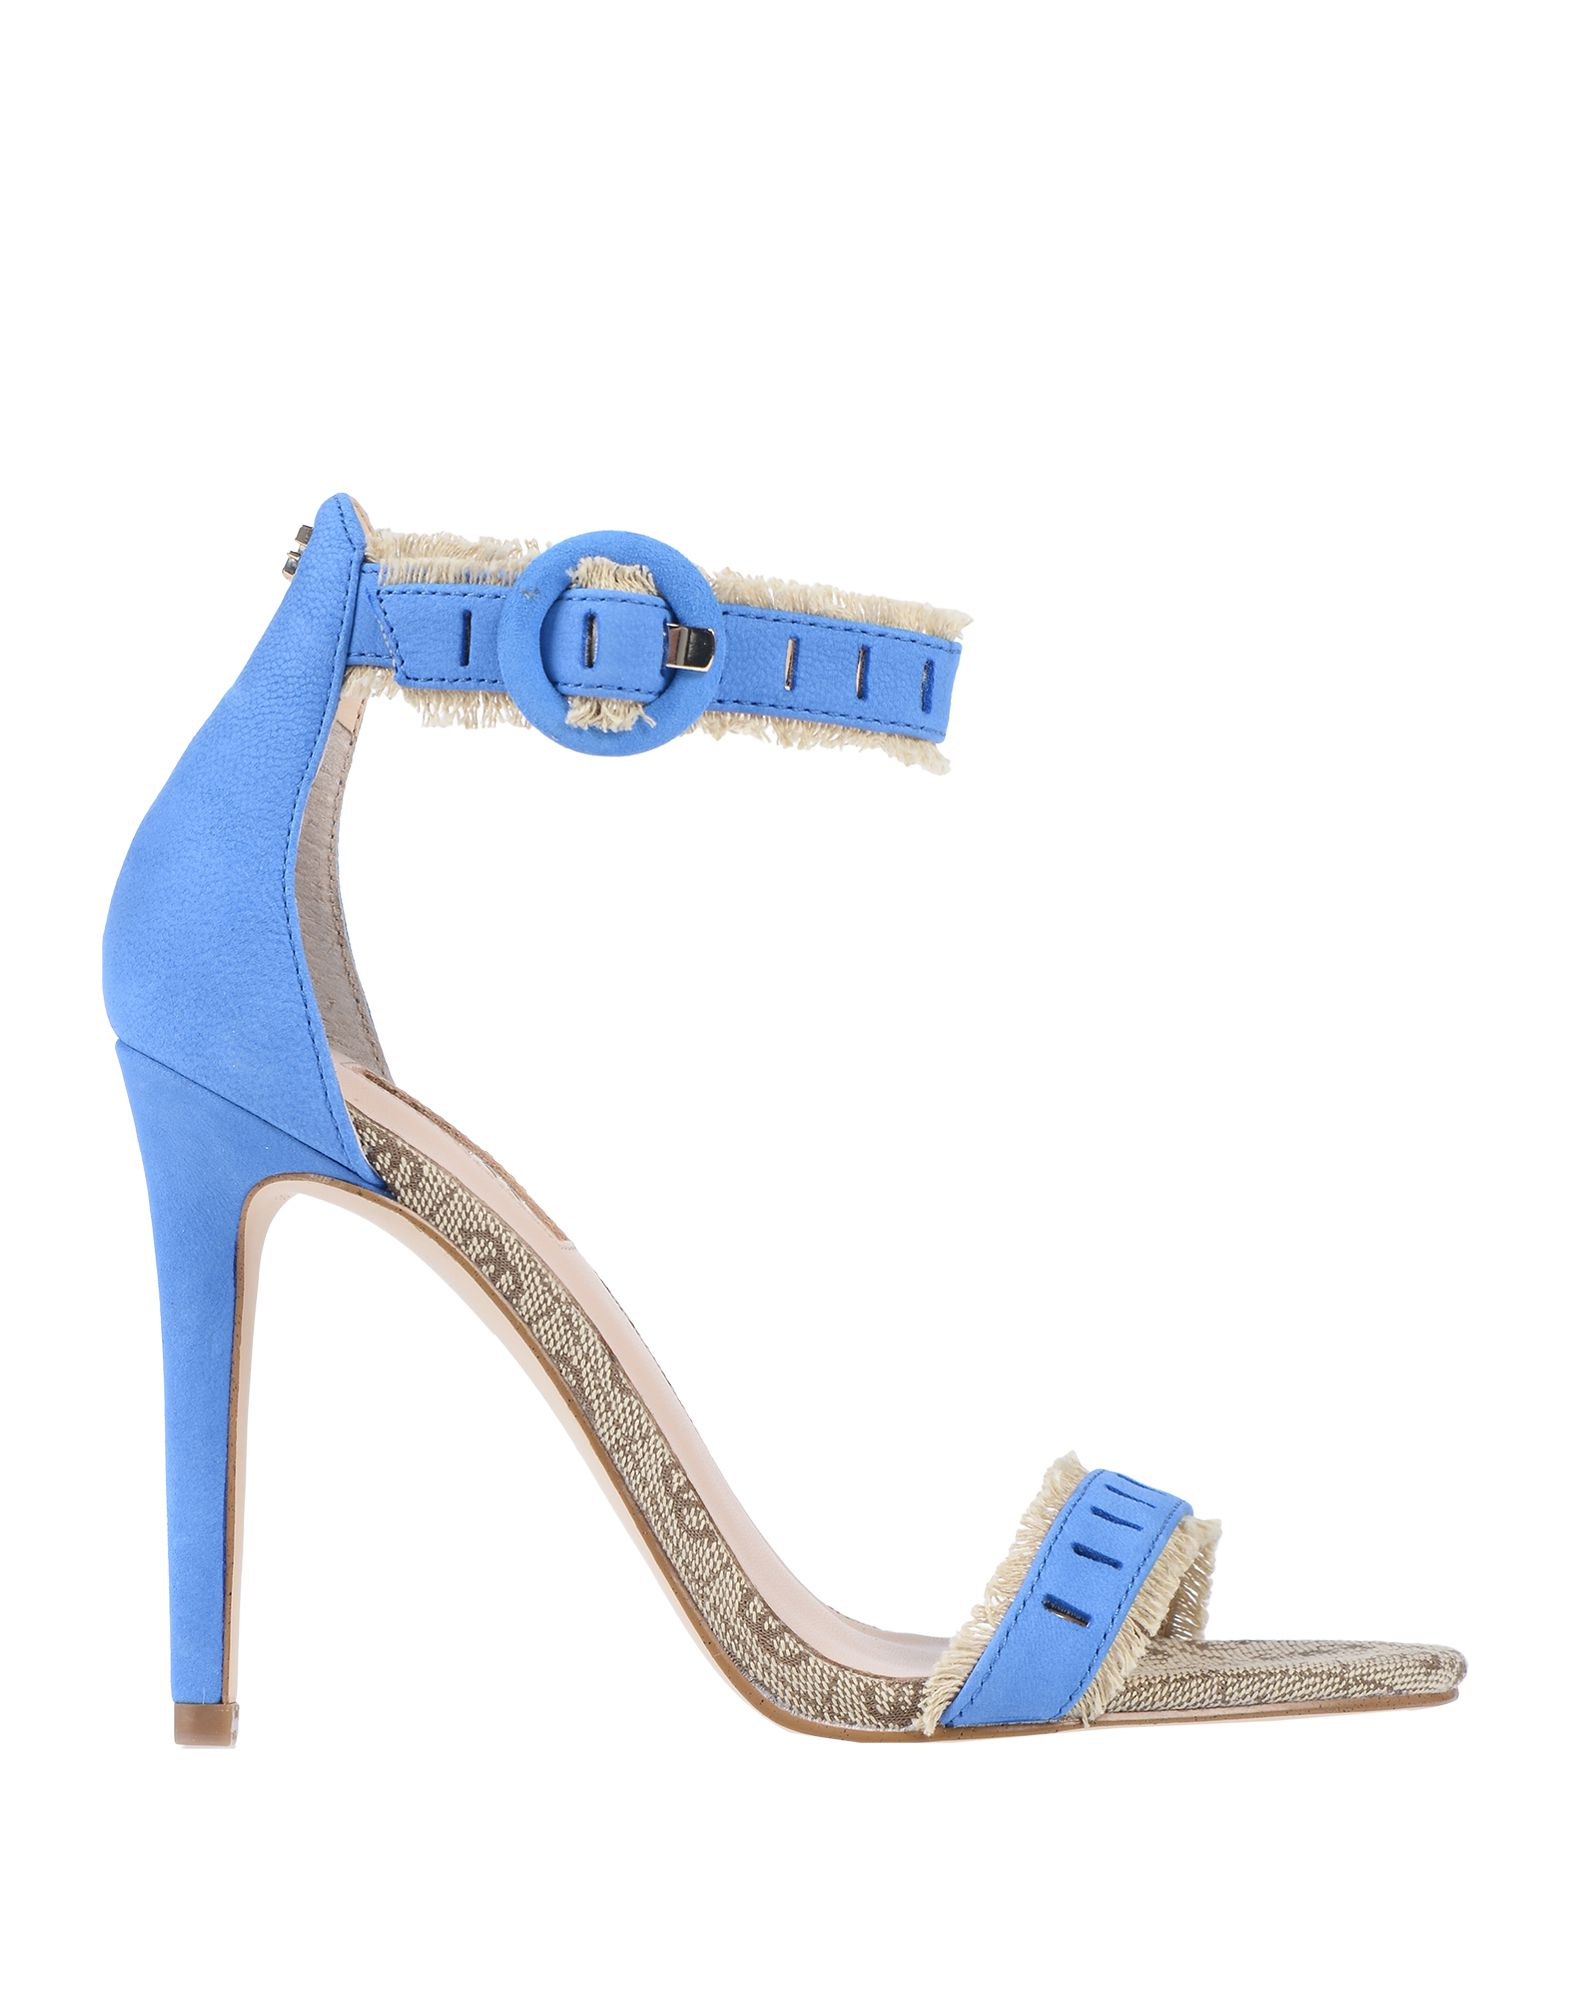 Guess  Sandals - Women Guess Sandals online on  Guess United Kingdom - 11524863BT 358209